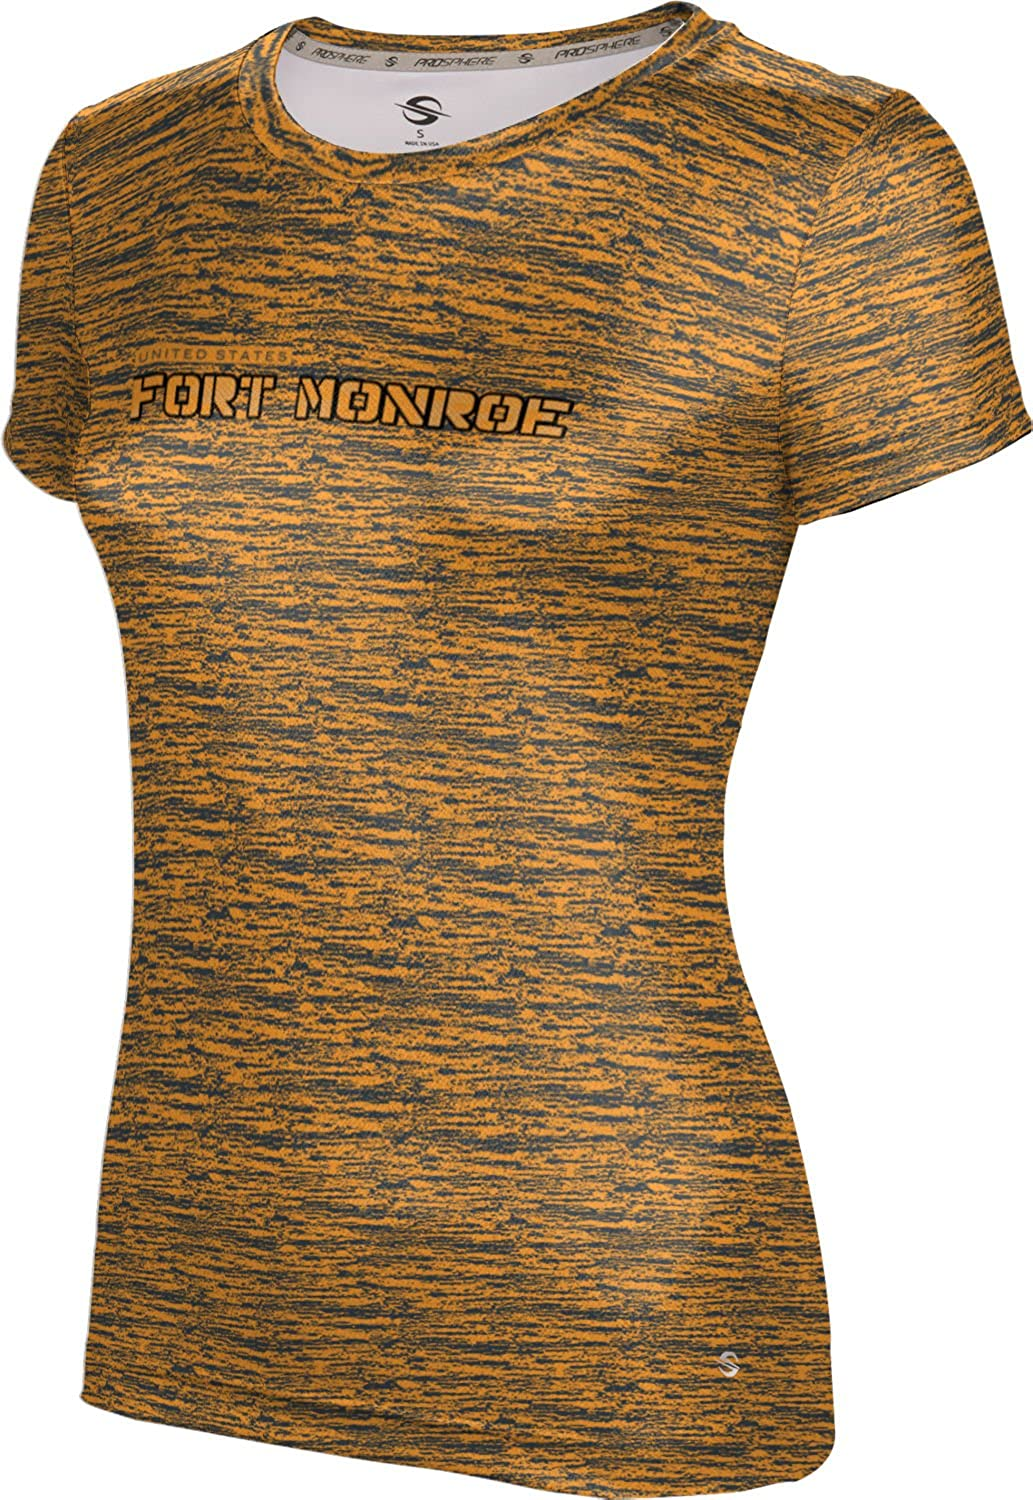 ProSphere Women's Fort Monroe Military Brushed Tech Tee